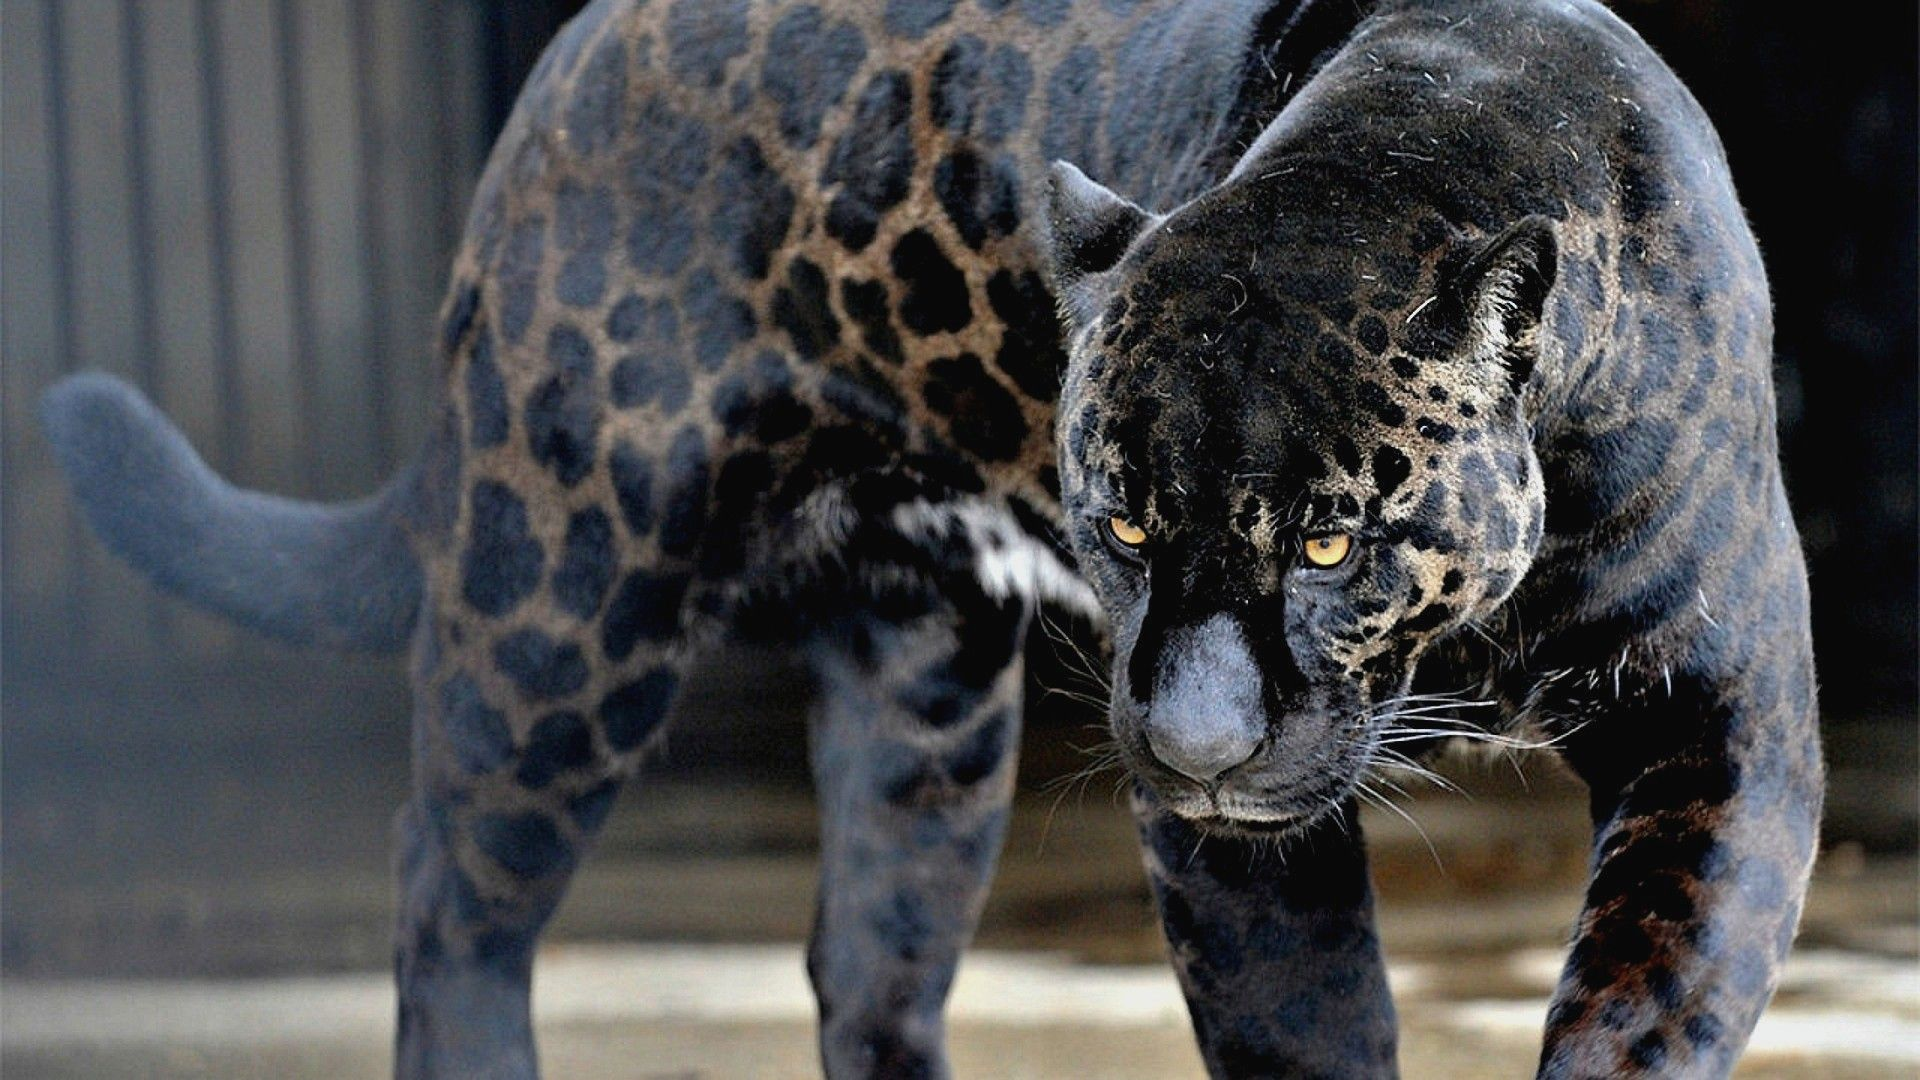 Elegant Black Jaguar